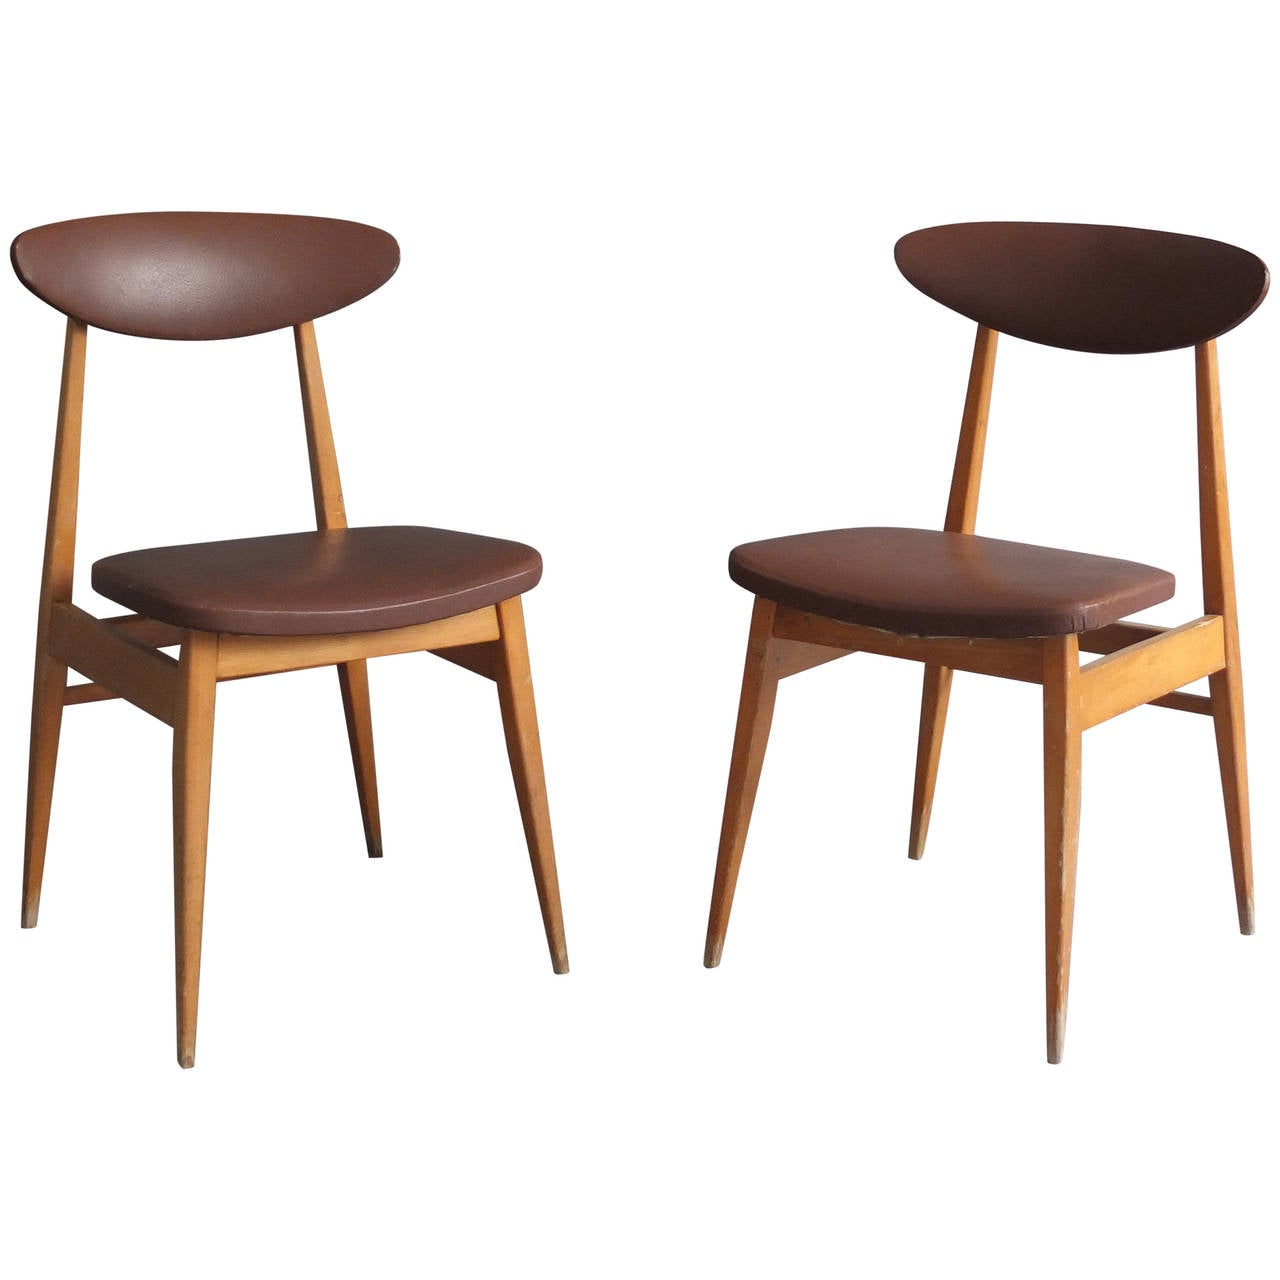 14 French 1950s Dining or Side Chairs